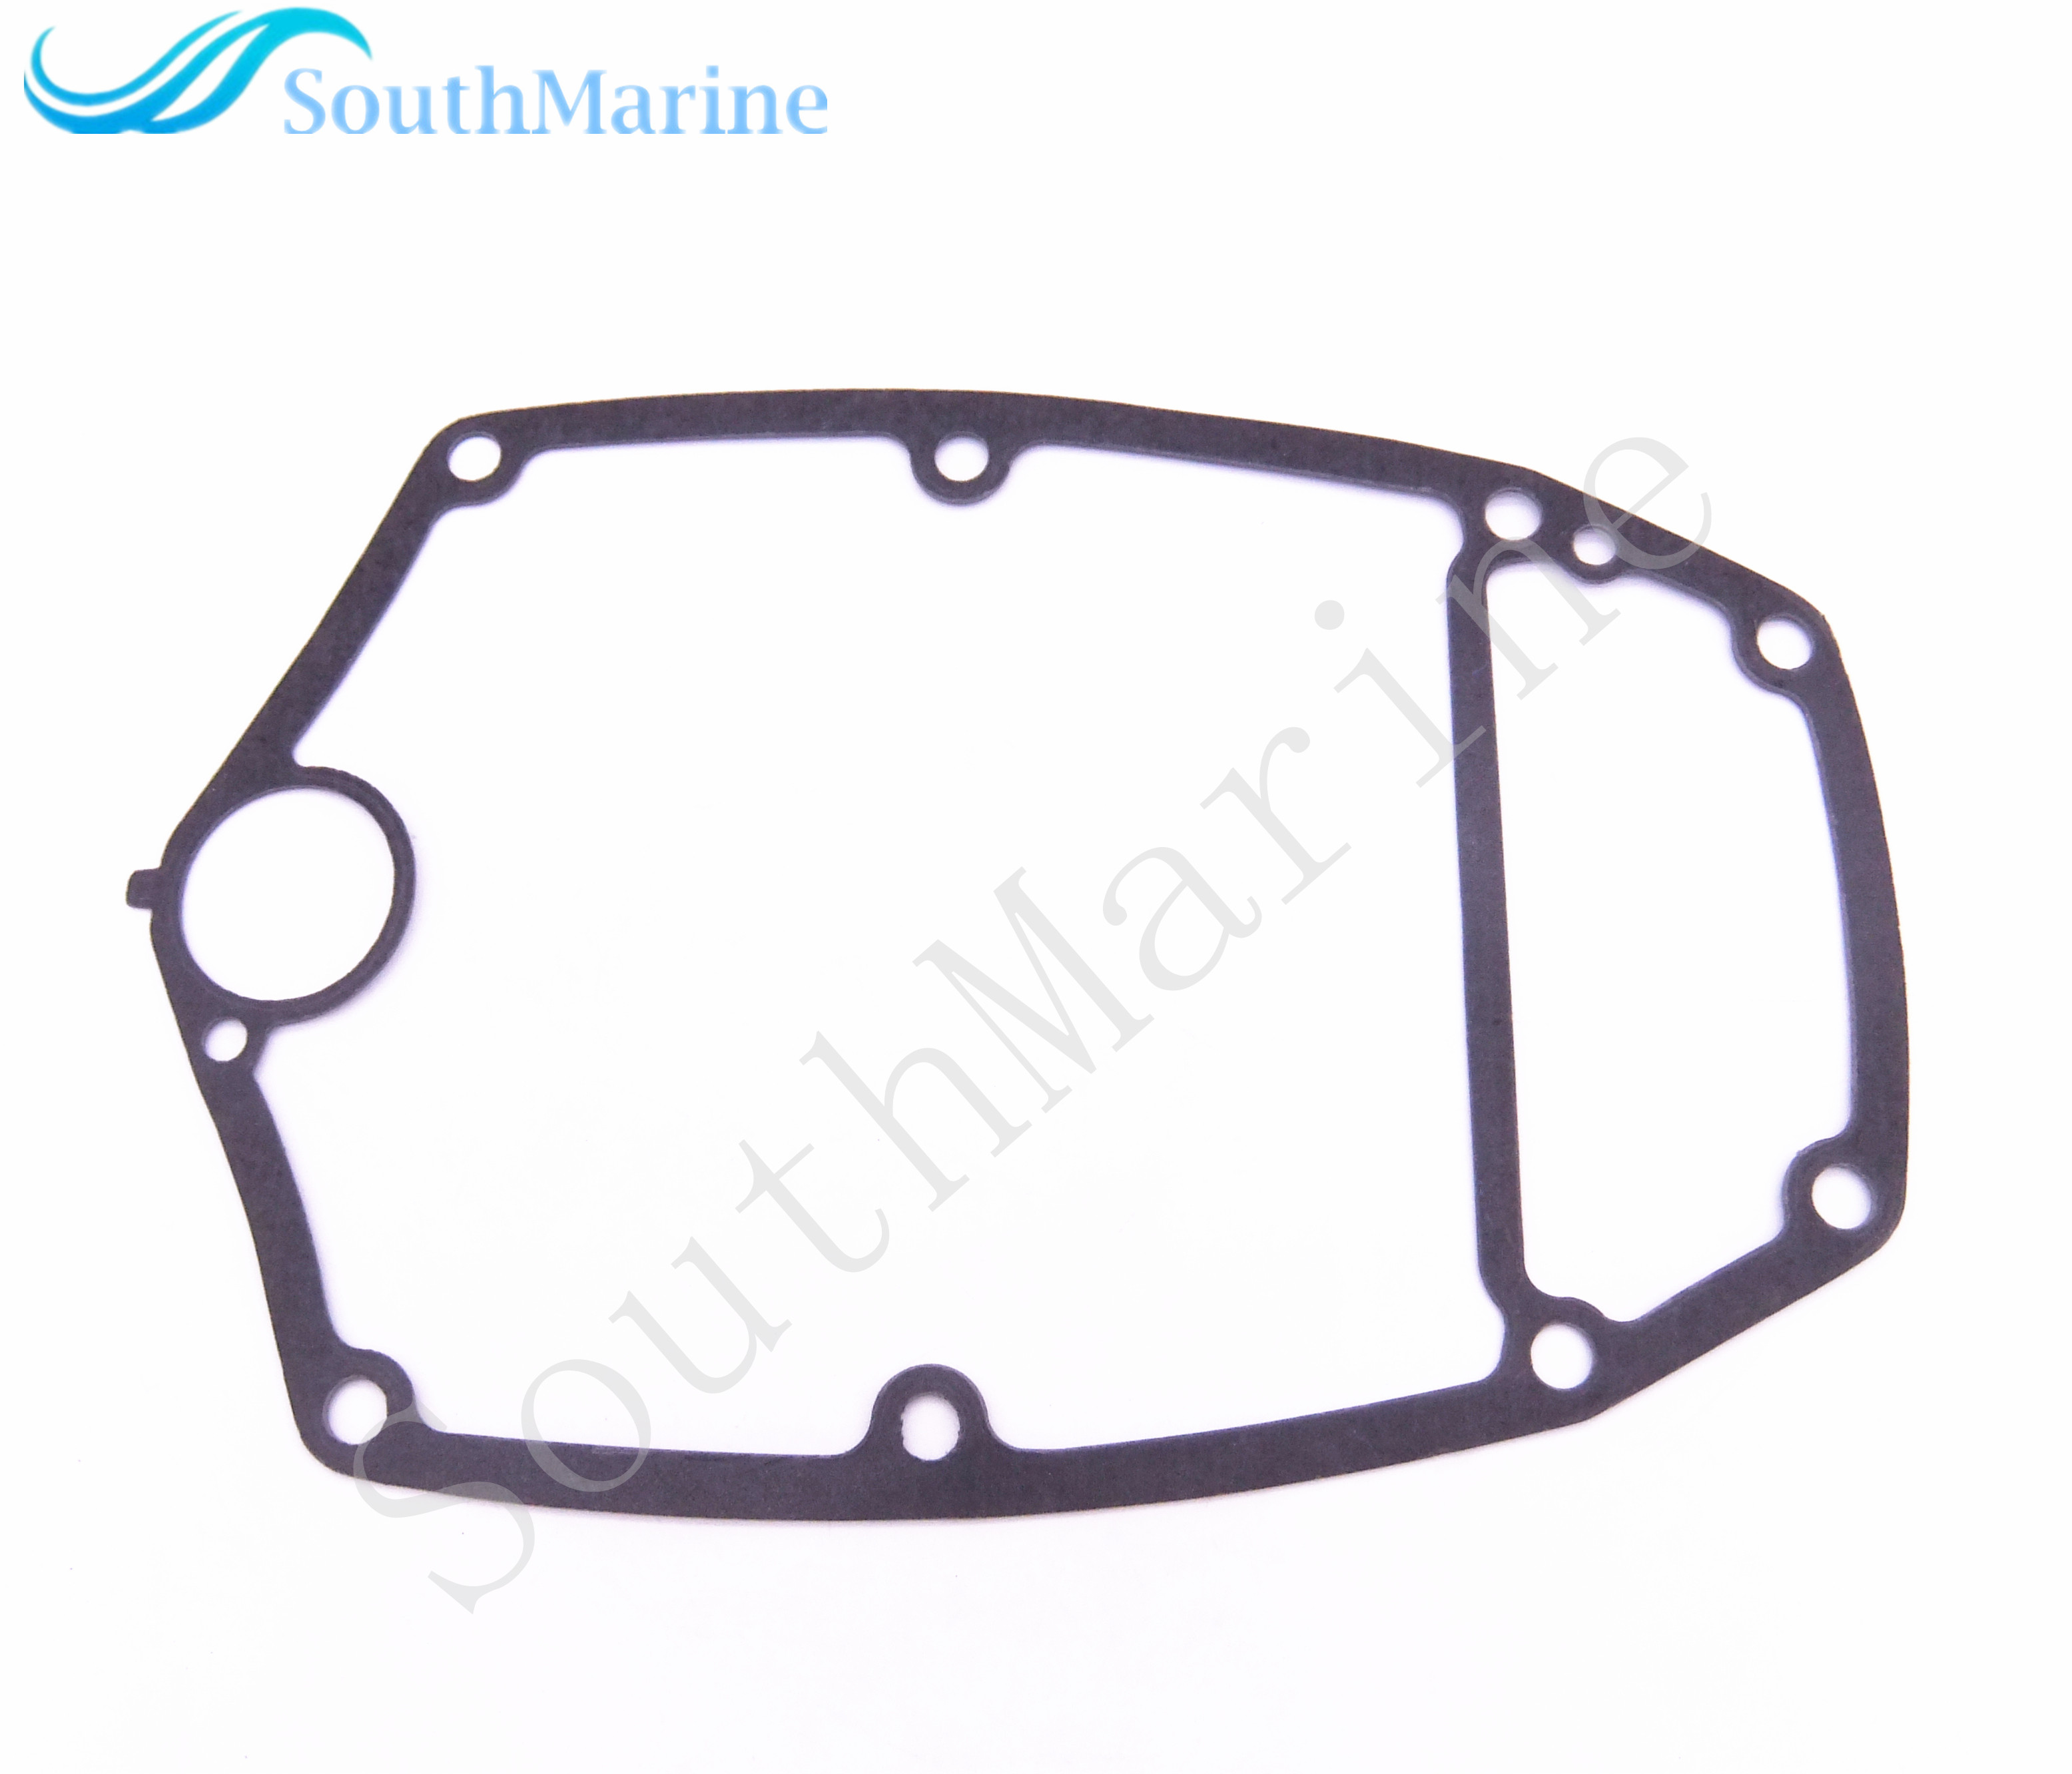 Upper Casing Gasket Outboard Engine 66T-45114-A0 for Yamaha 2-Stroke 40HP 40X E40X Boat Motor  Free Shipping